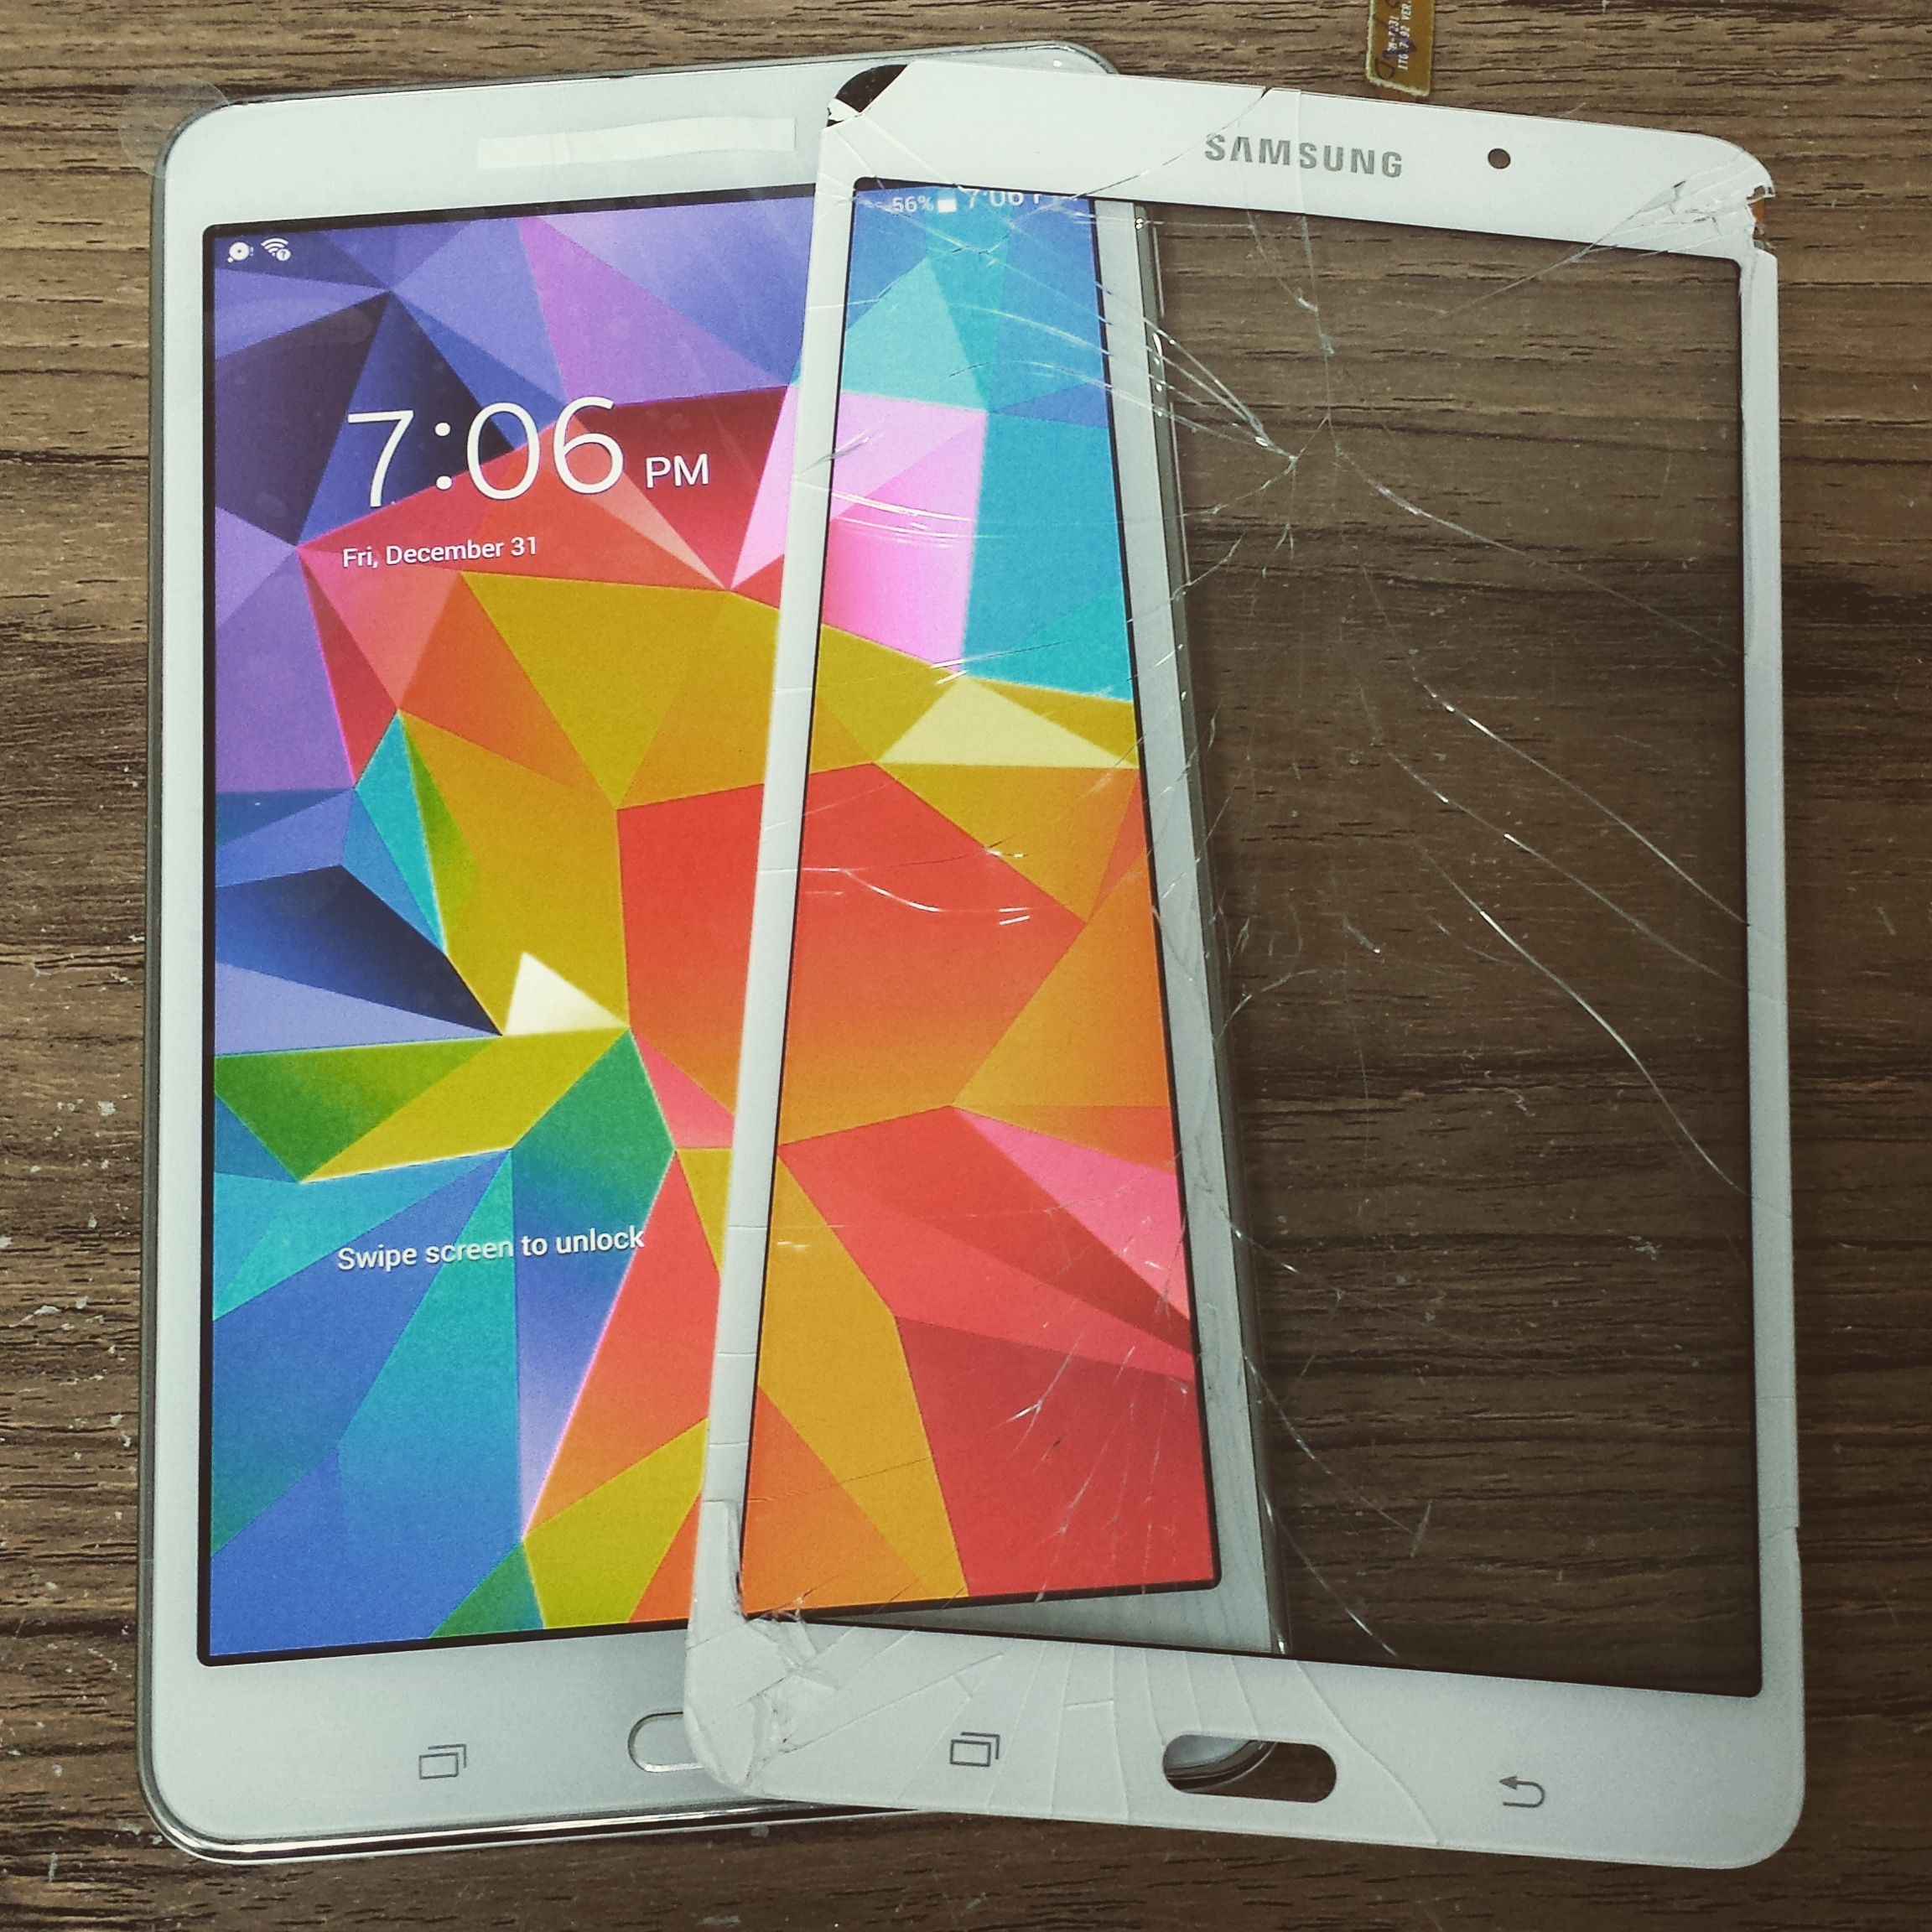 Samsung Tab 4 Digitizer Repair